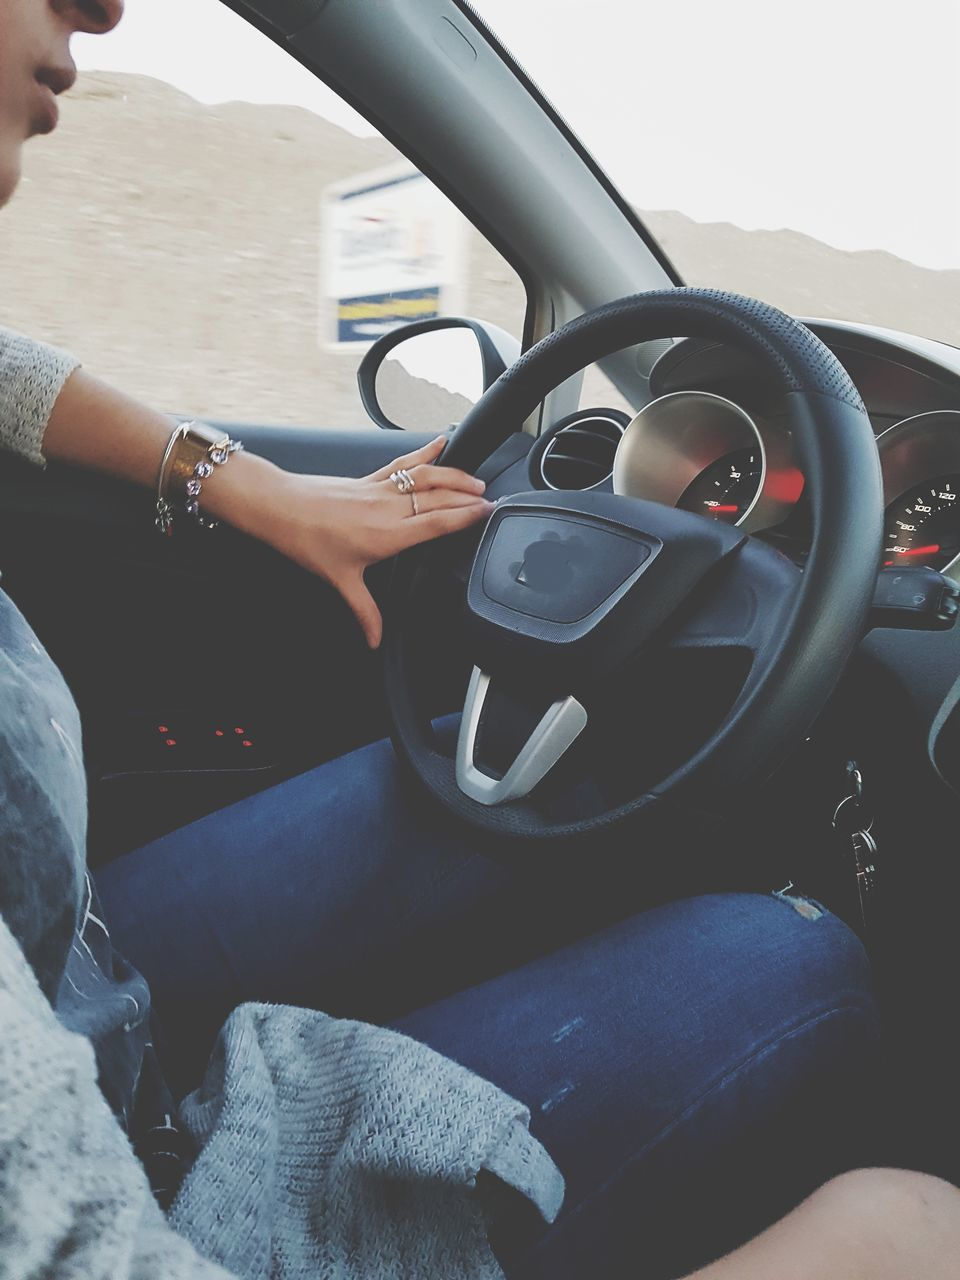 steering wheel, transportation, one person, real people, car interior, travel, day, sitting, human hand, outdoors, people